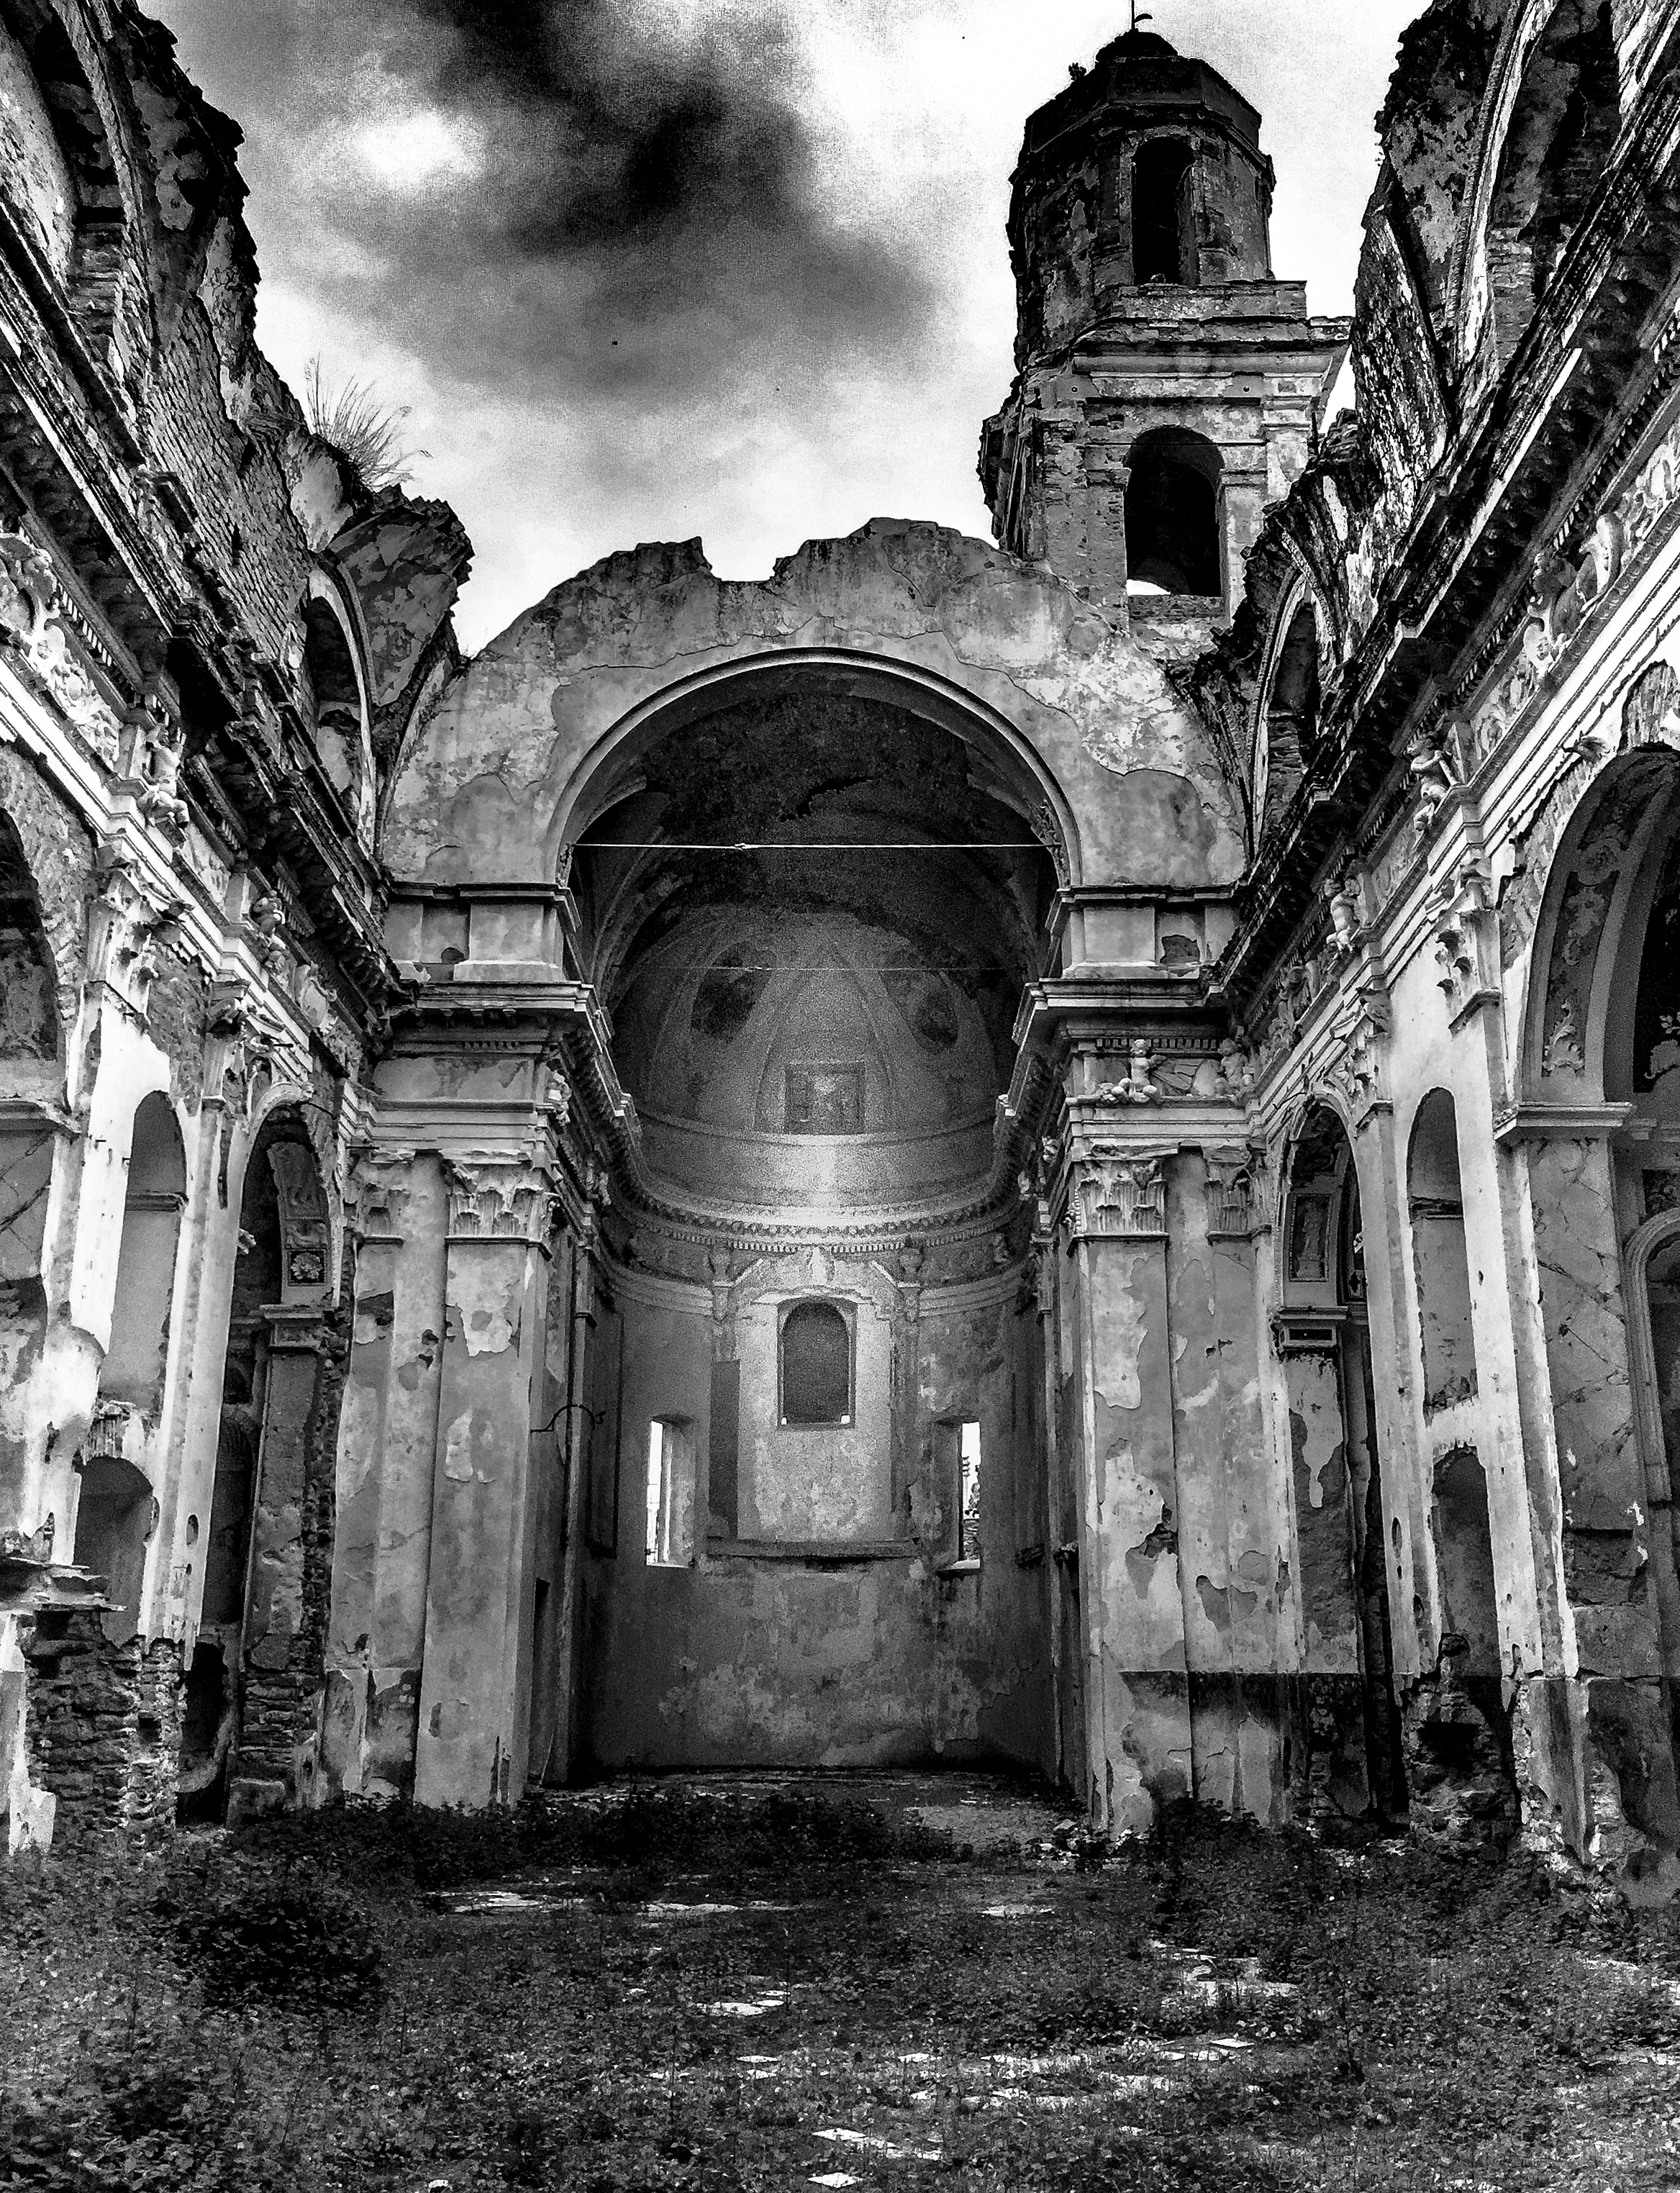 Destroyed Church in the province of Liguria, Italy. Refugees camp in the grounds of this ruined church near the Italy-France border.